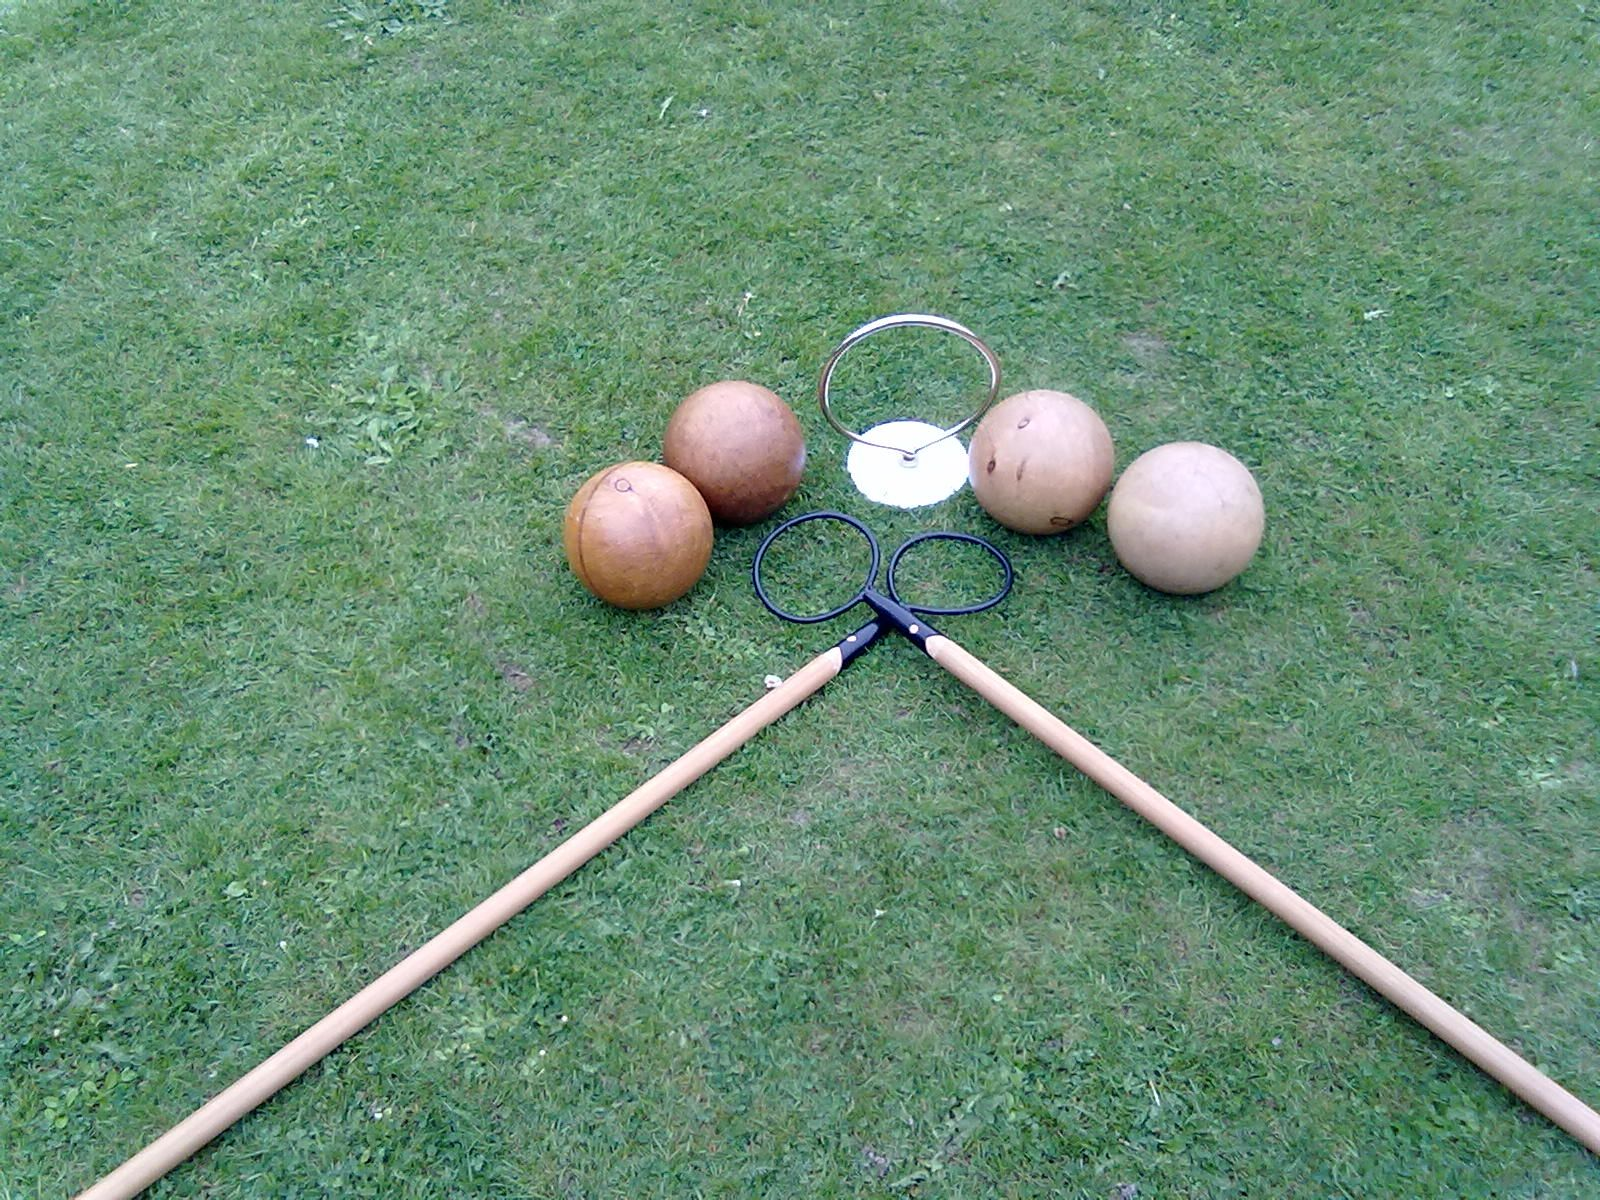 with the help of many the woolston lawn billiards and bat and